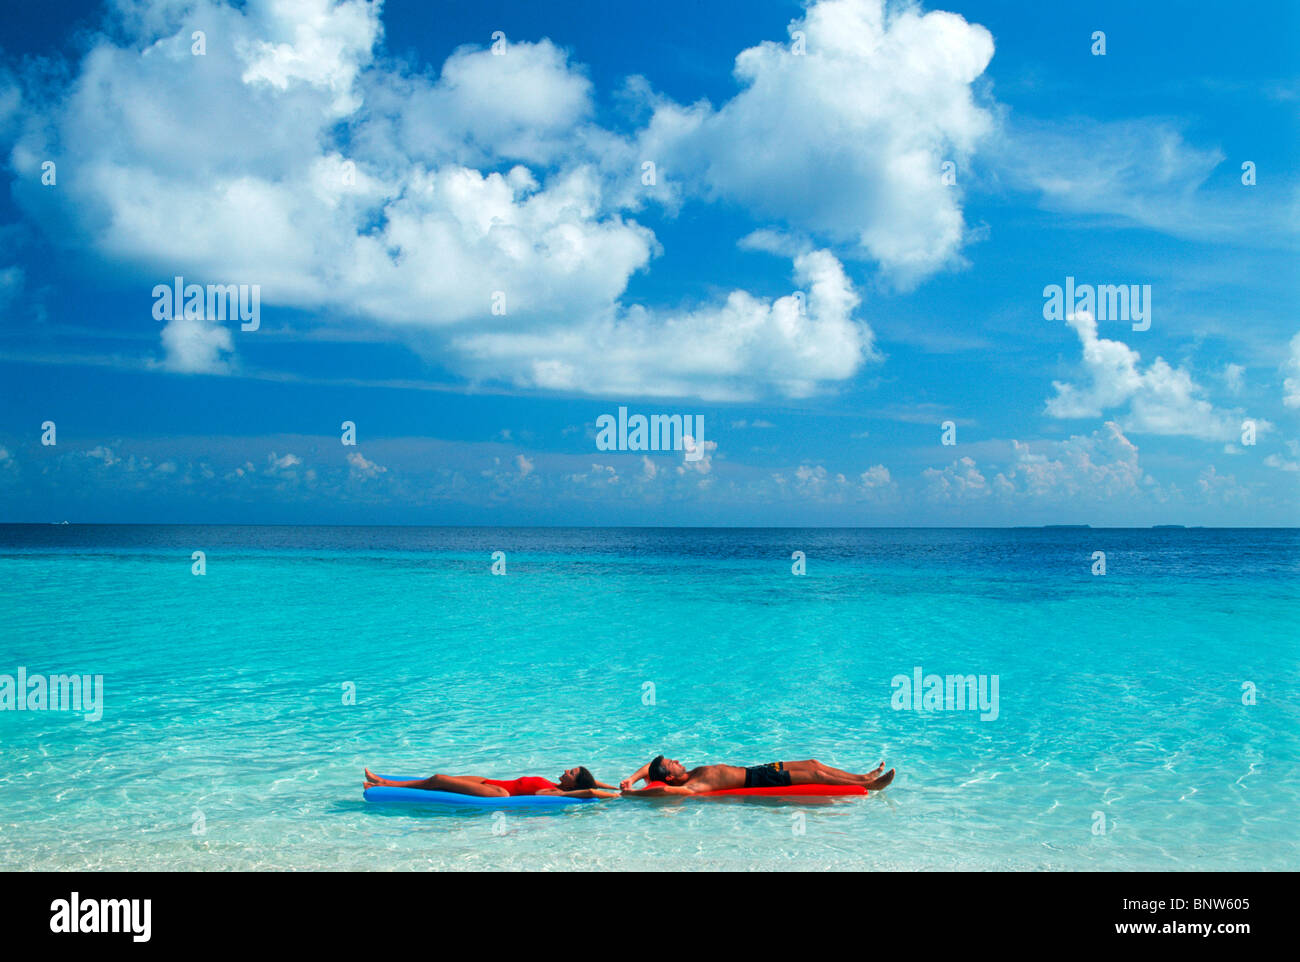 Couple floating in paradise under puffy white clouds on colorful air mattresses during idyllic island holiday - Stock Image